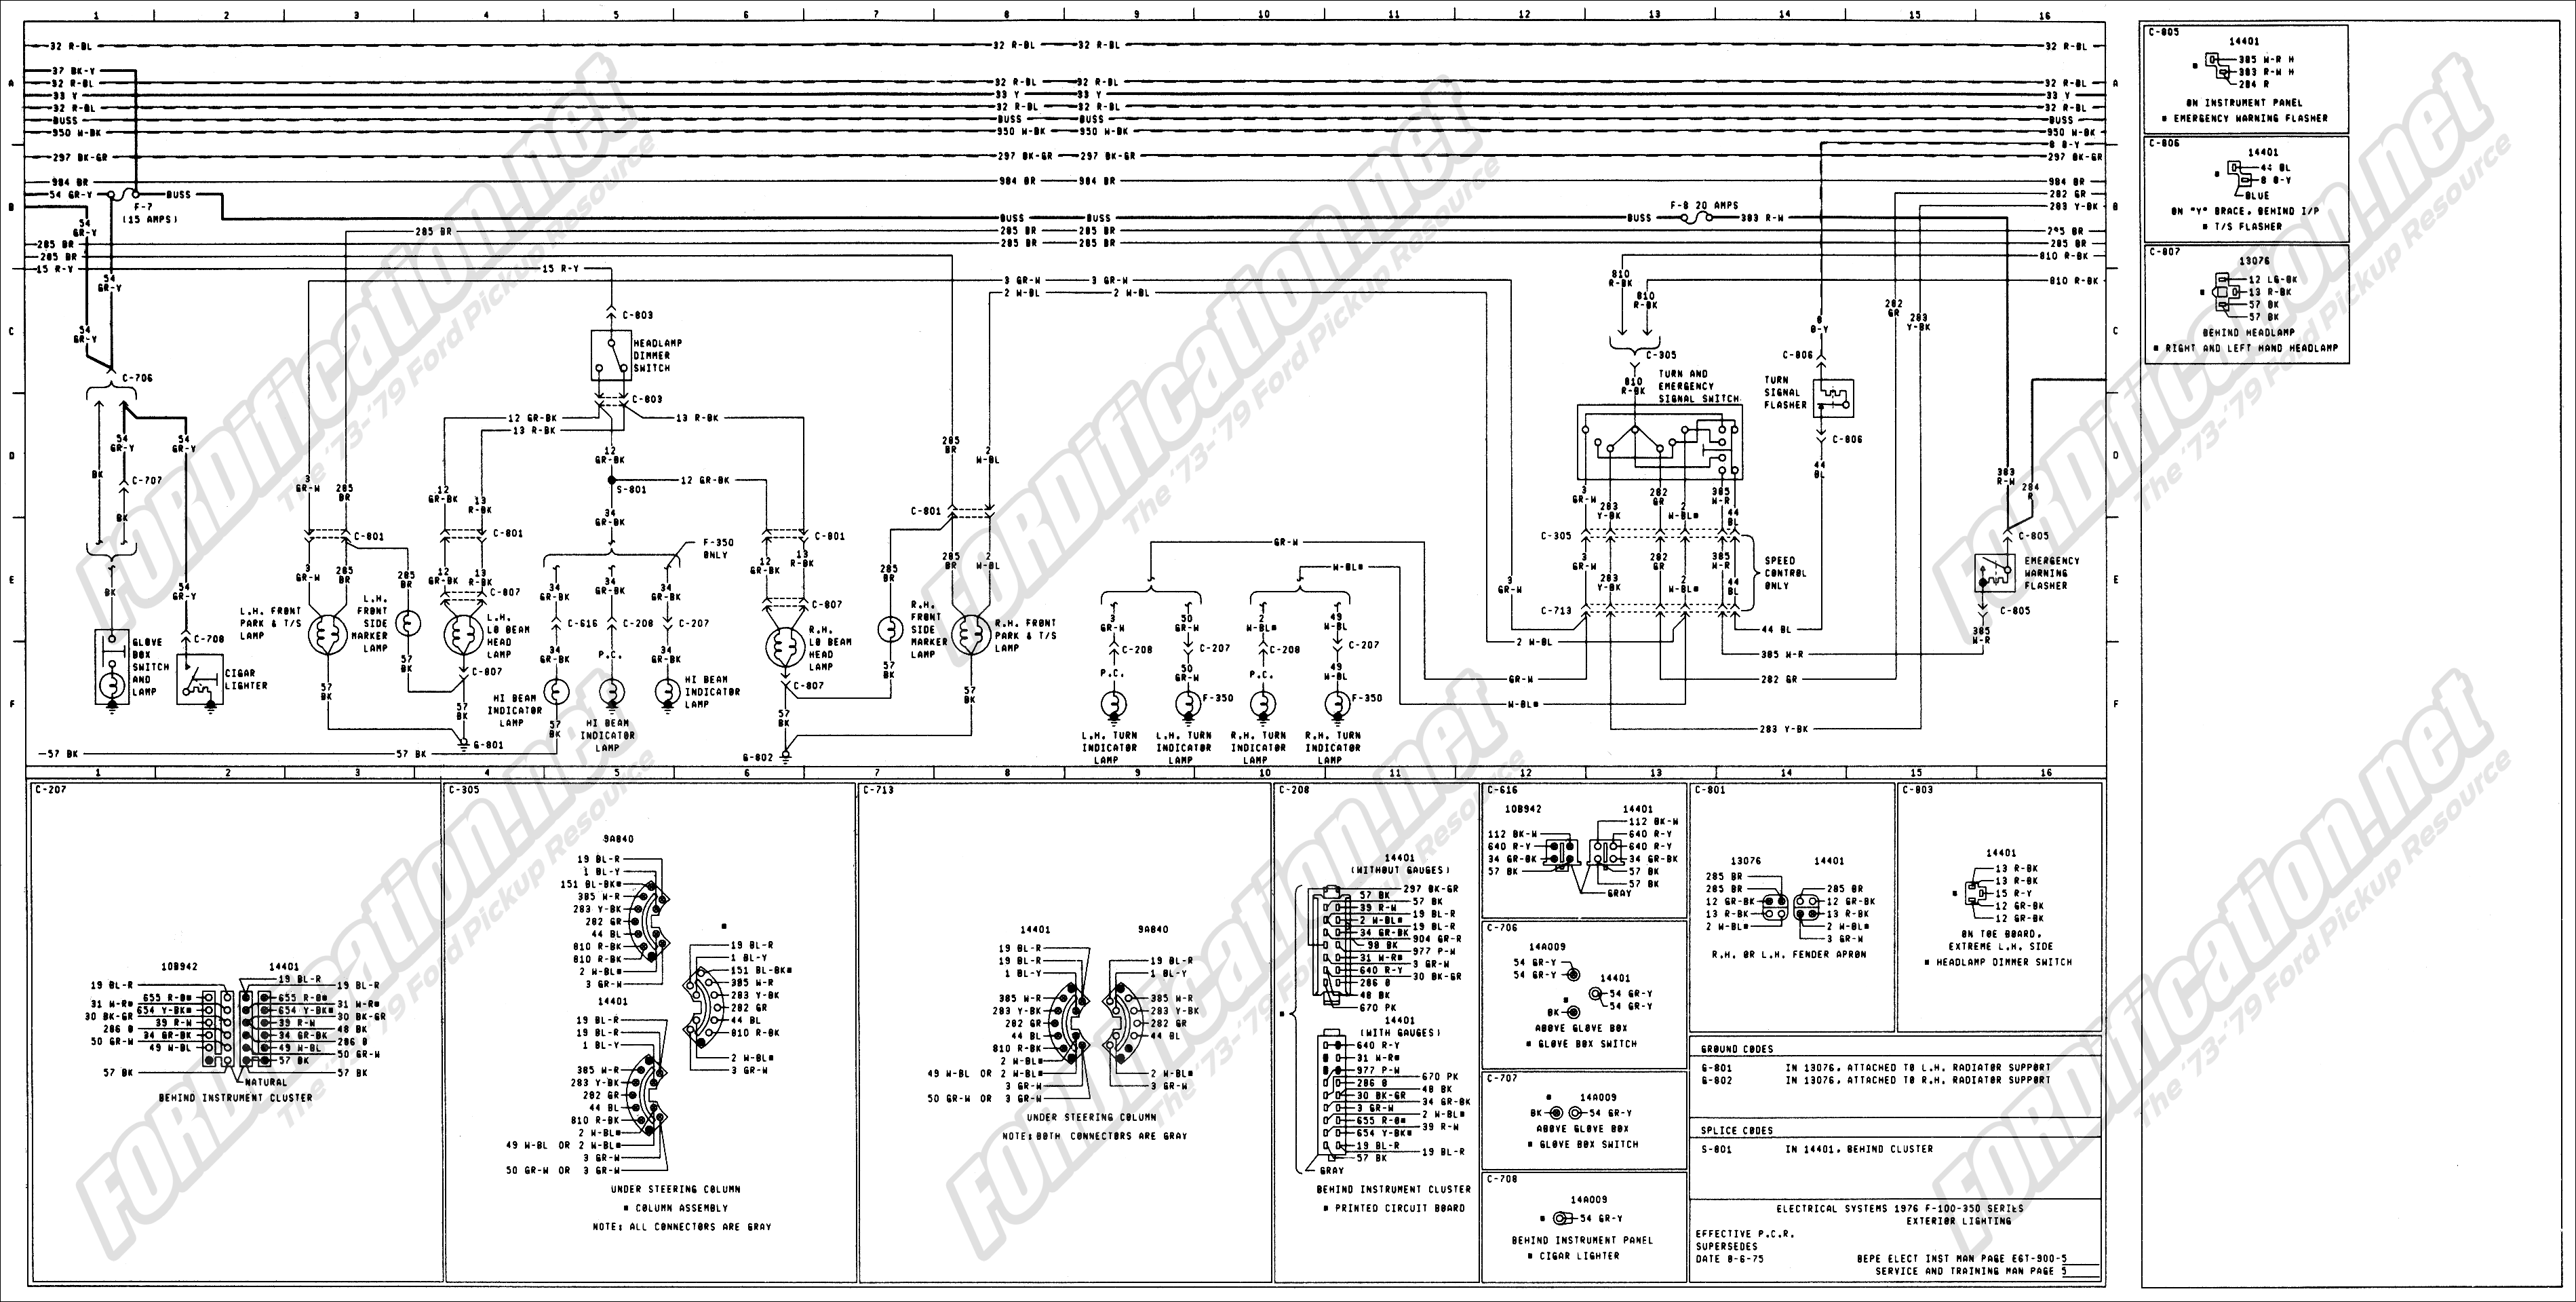 75 F250 Tail Light Wiring Schematics Diagrams Harness 1973 1979 Ford Truck Fordification Net Rh 1977 1988